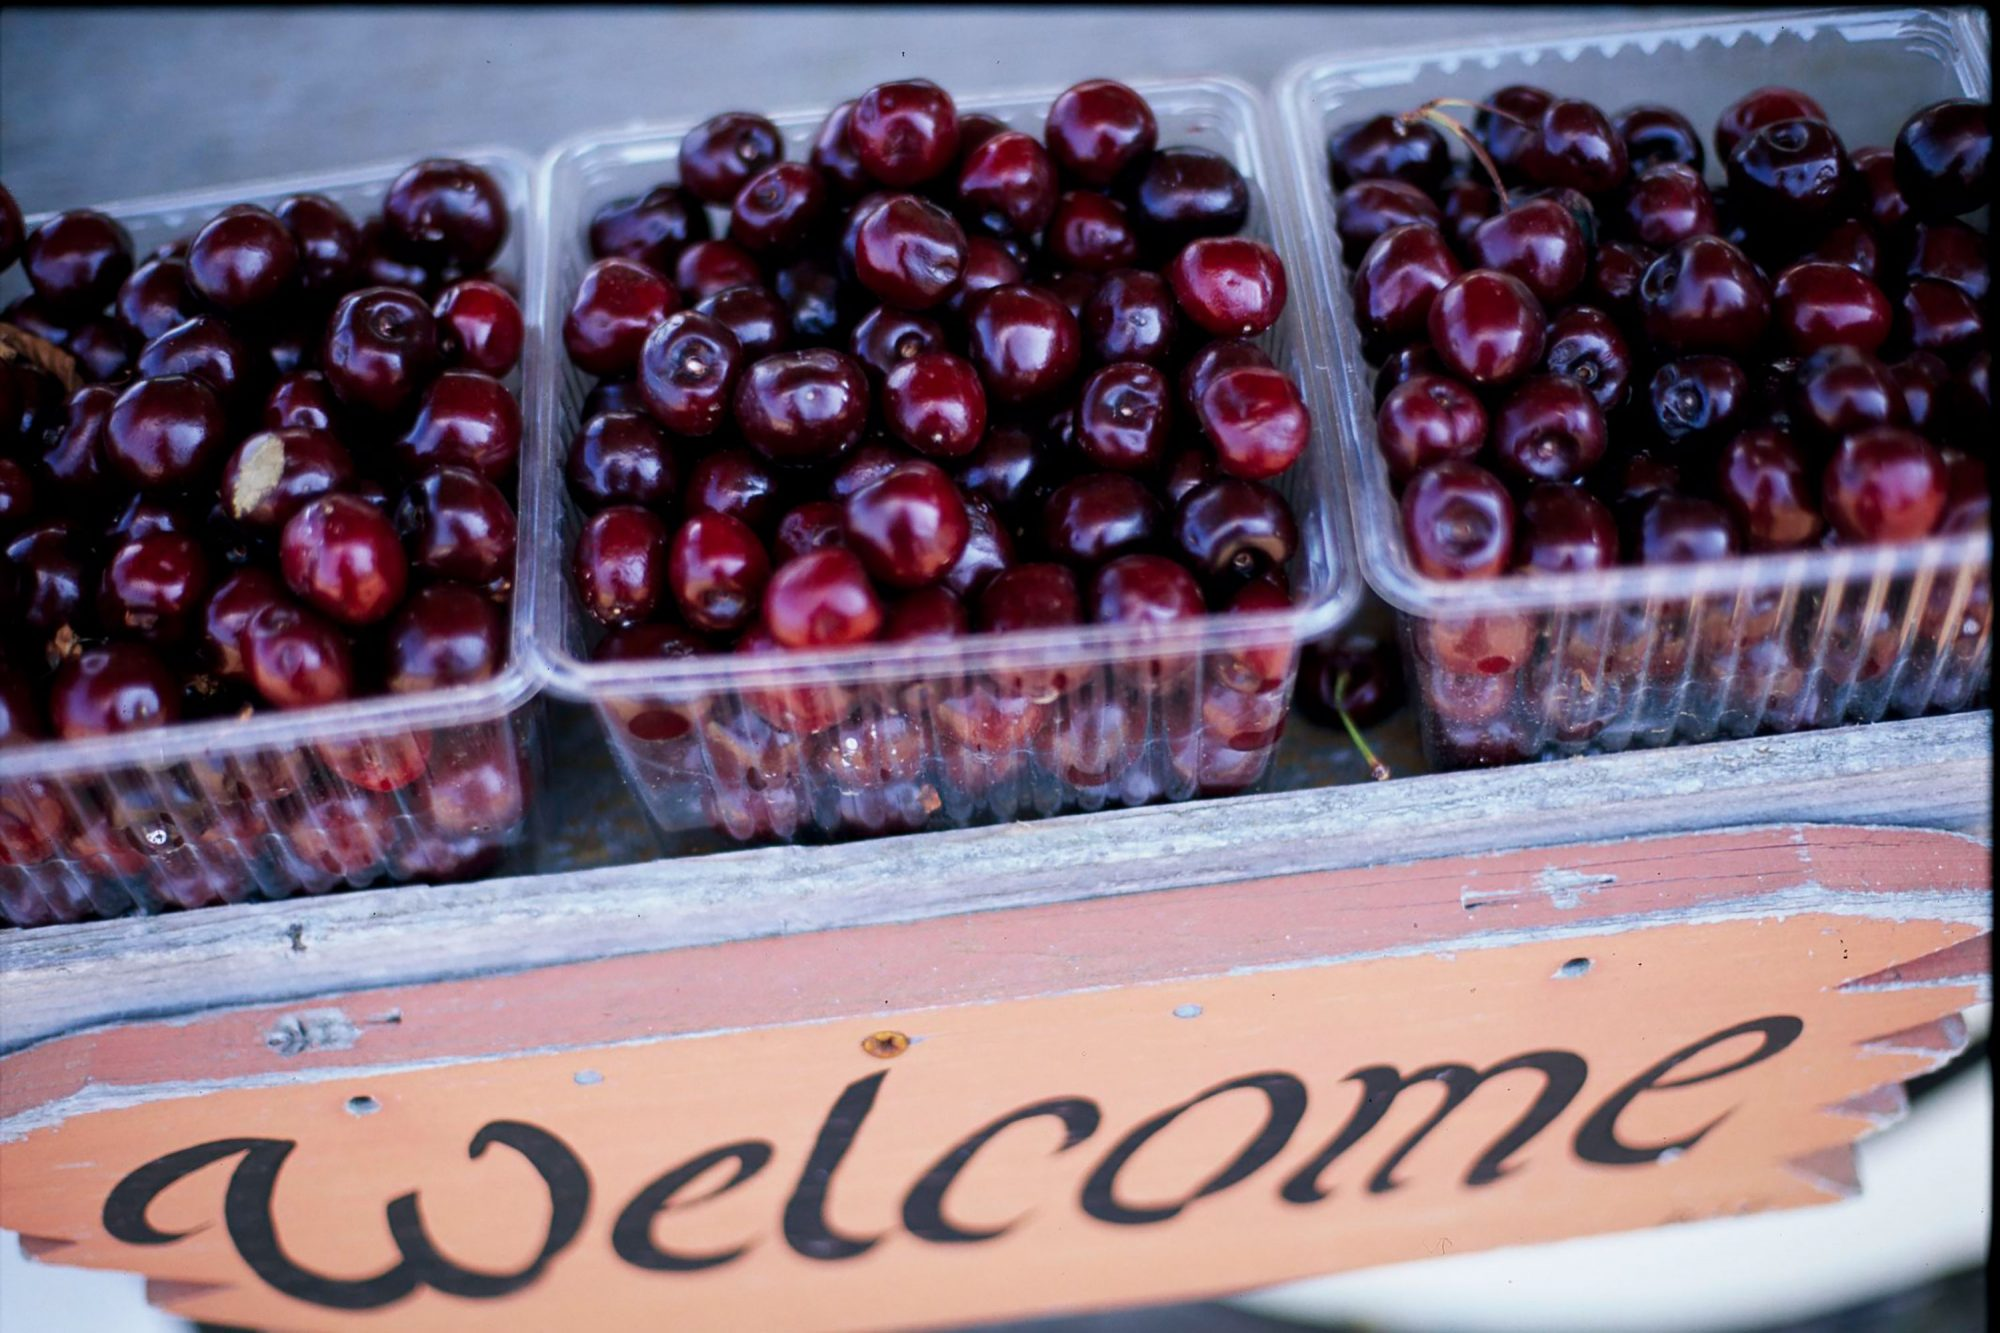 Cherries in cartons above welcome sign